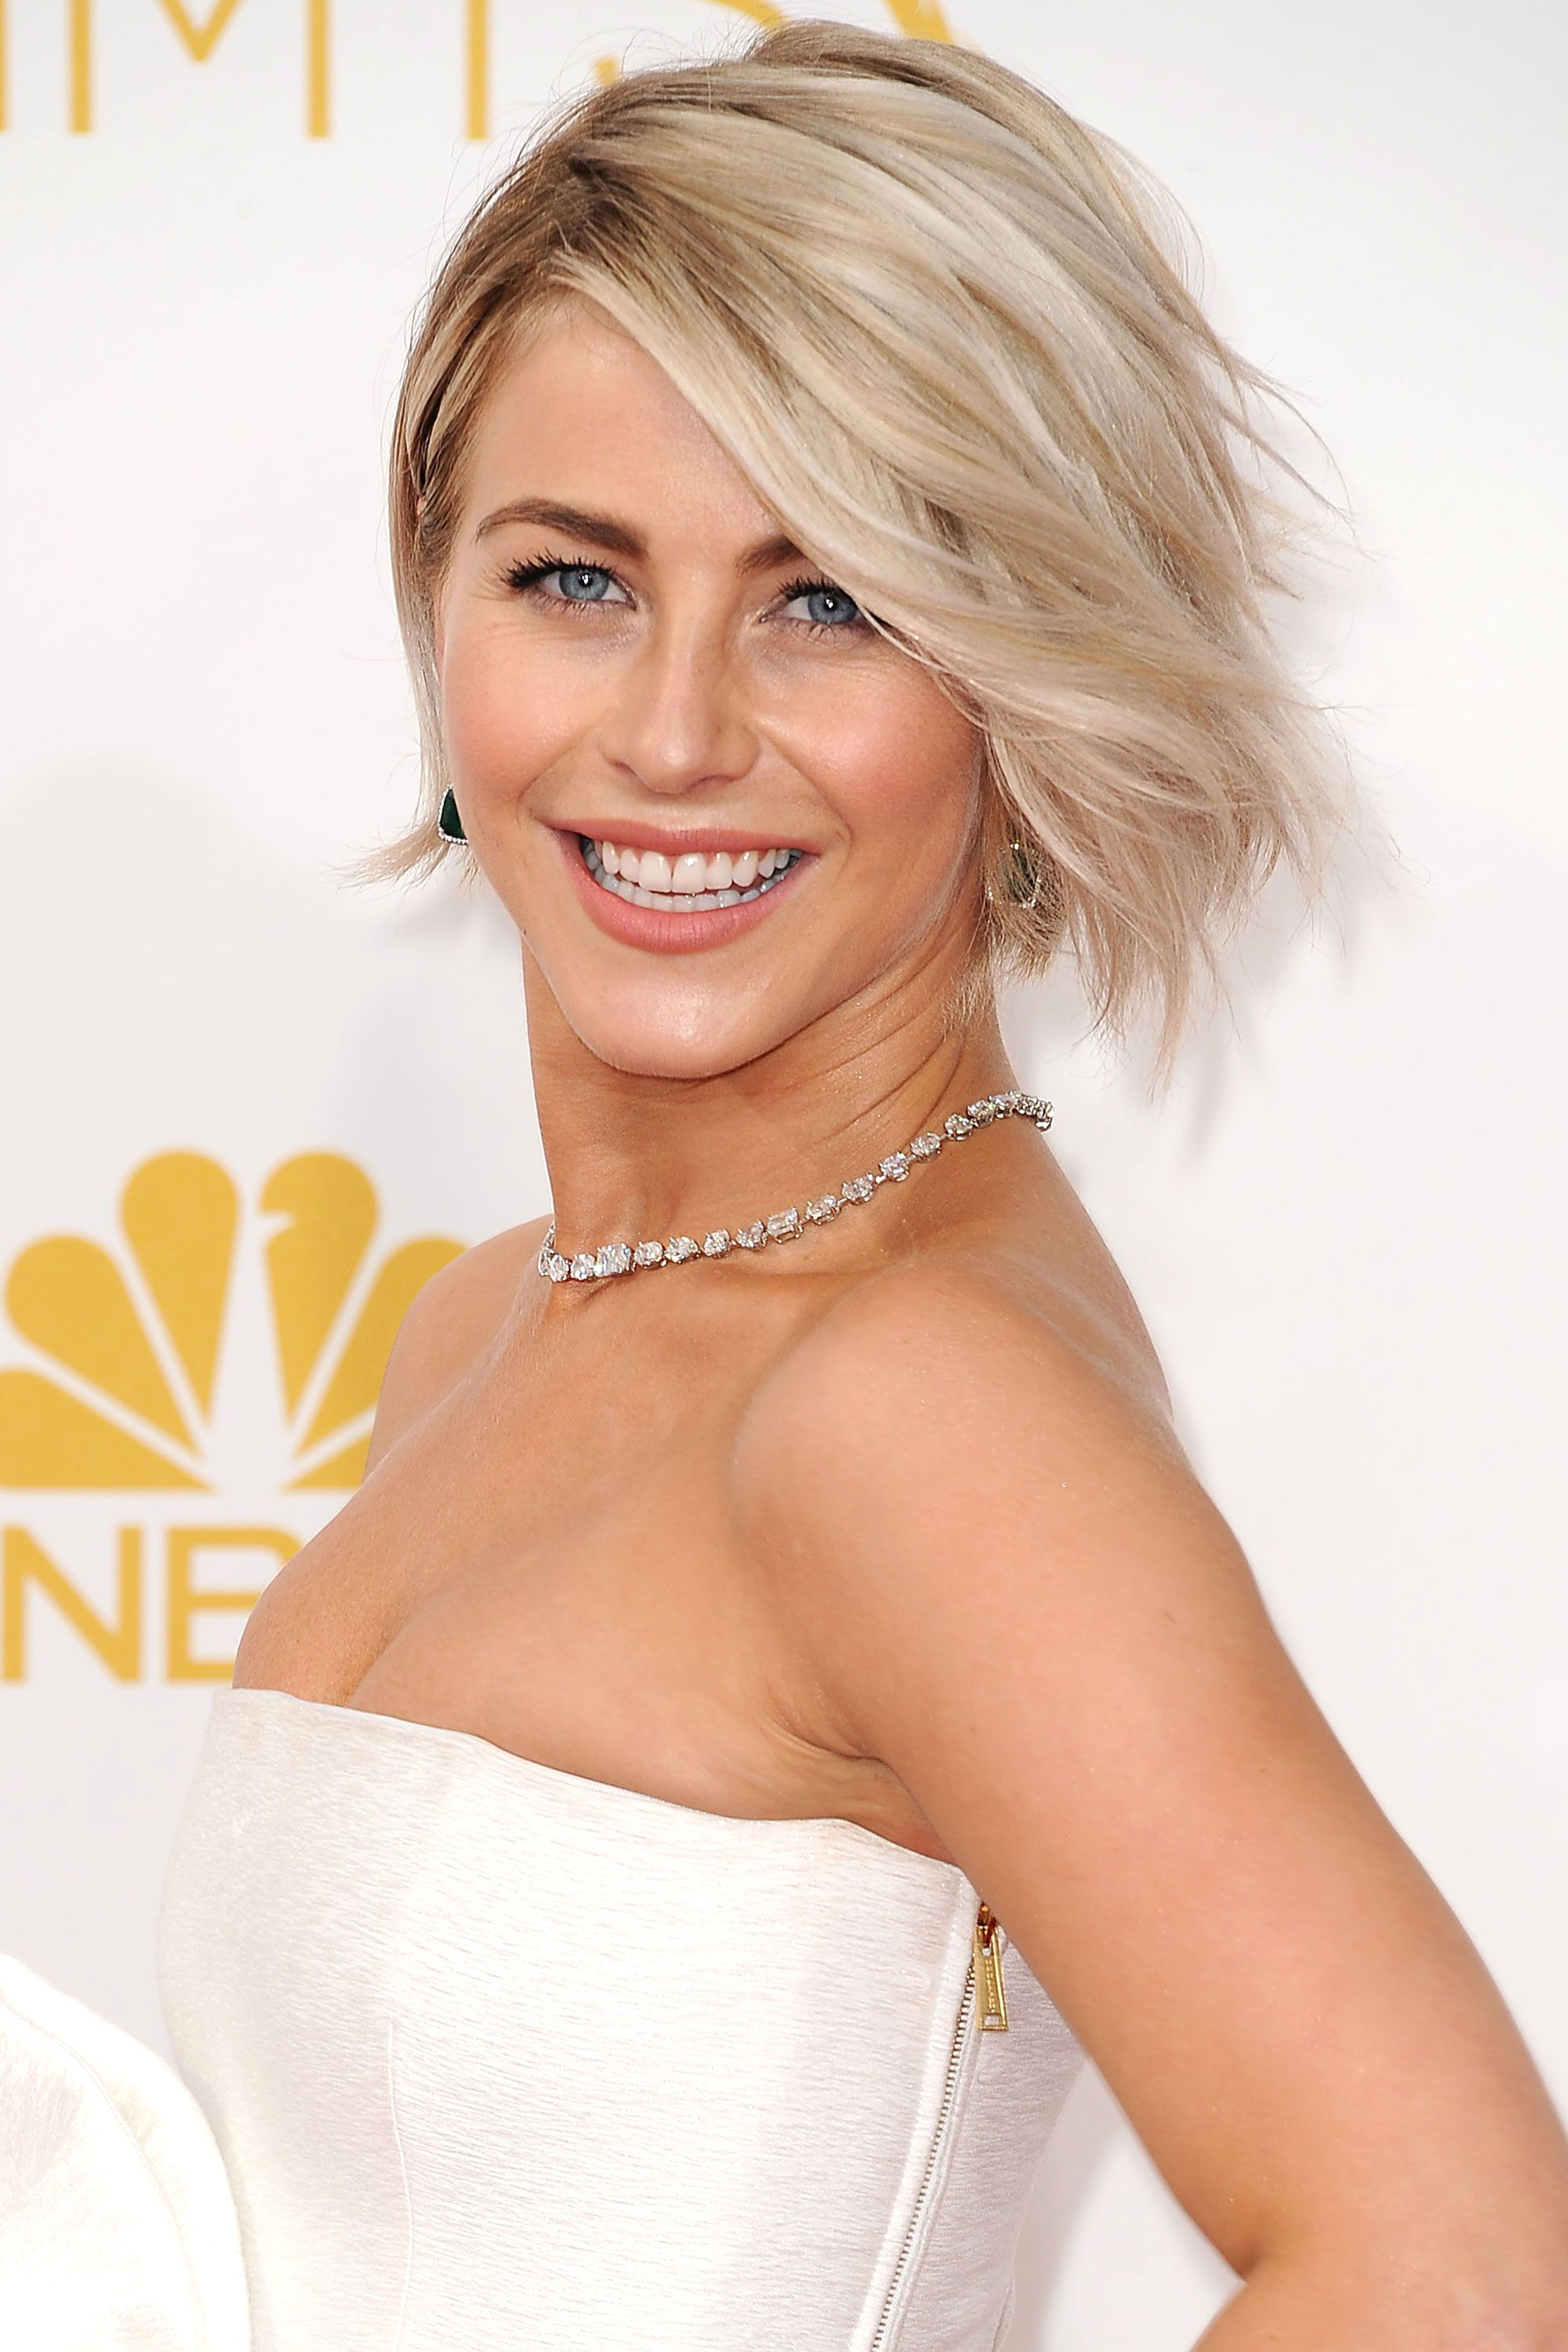 Brilliant 30 Blonde Hair Colors For 2017 Best Celebrity Blonde Hairstyles Short Hairstyles For Black Women Fulllsitofus